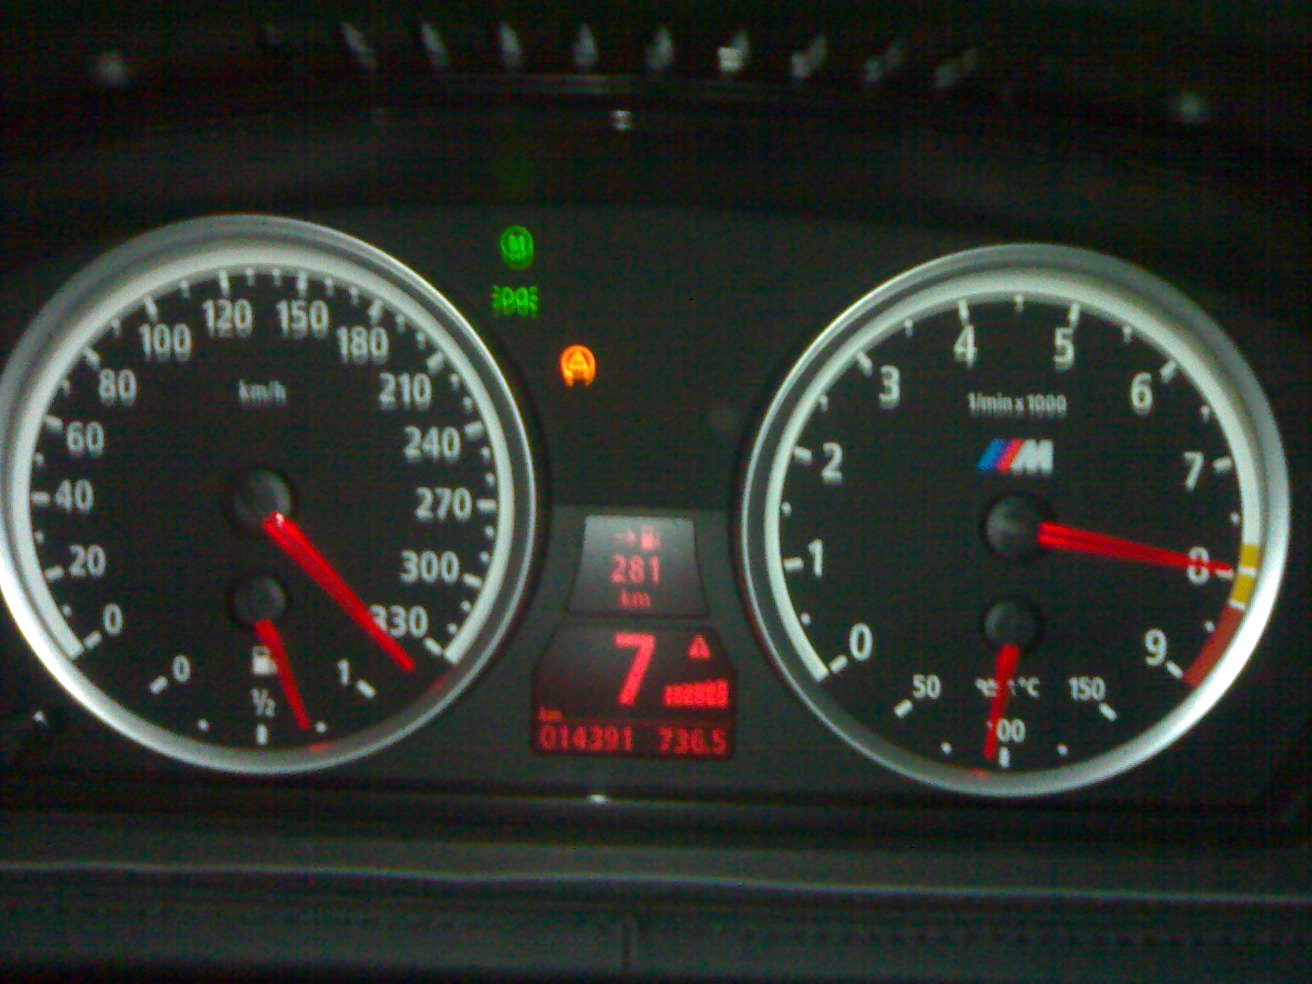 Topspeed limited at 305 km/h! - Page 2 - BMW M5 Forum and M6 Forums